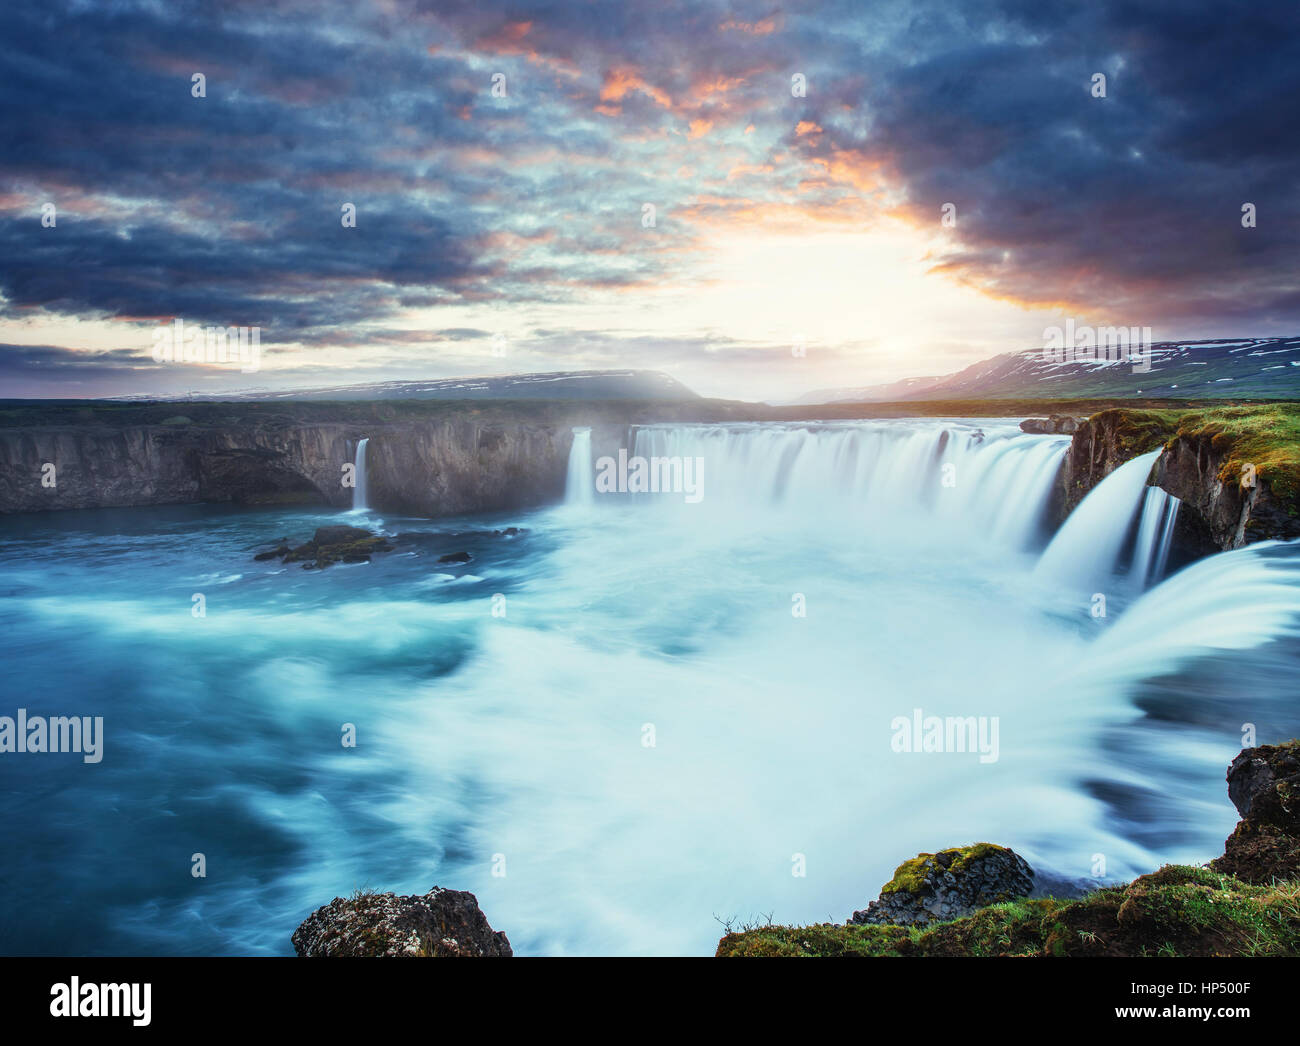 Godafoss waterfall at sunset. Beauty world. Iceland, Europe - Stock Image